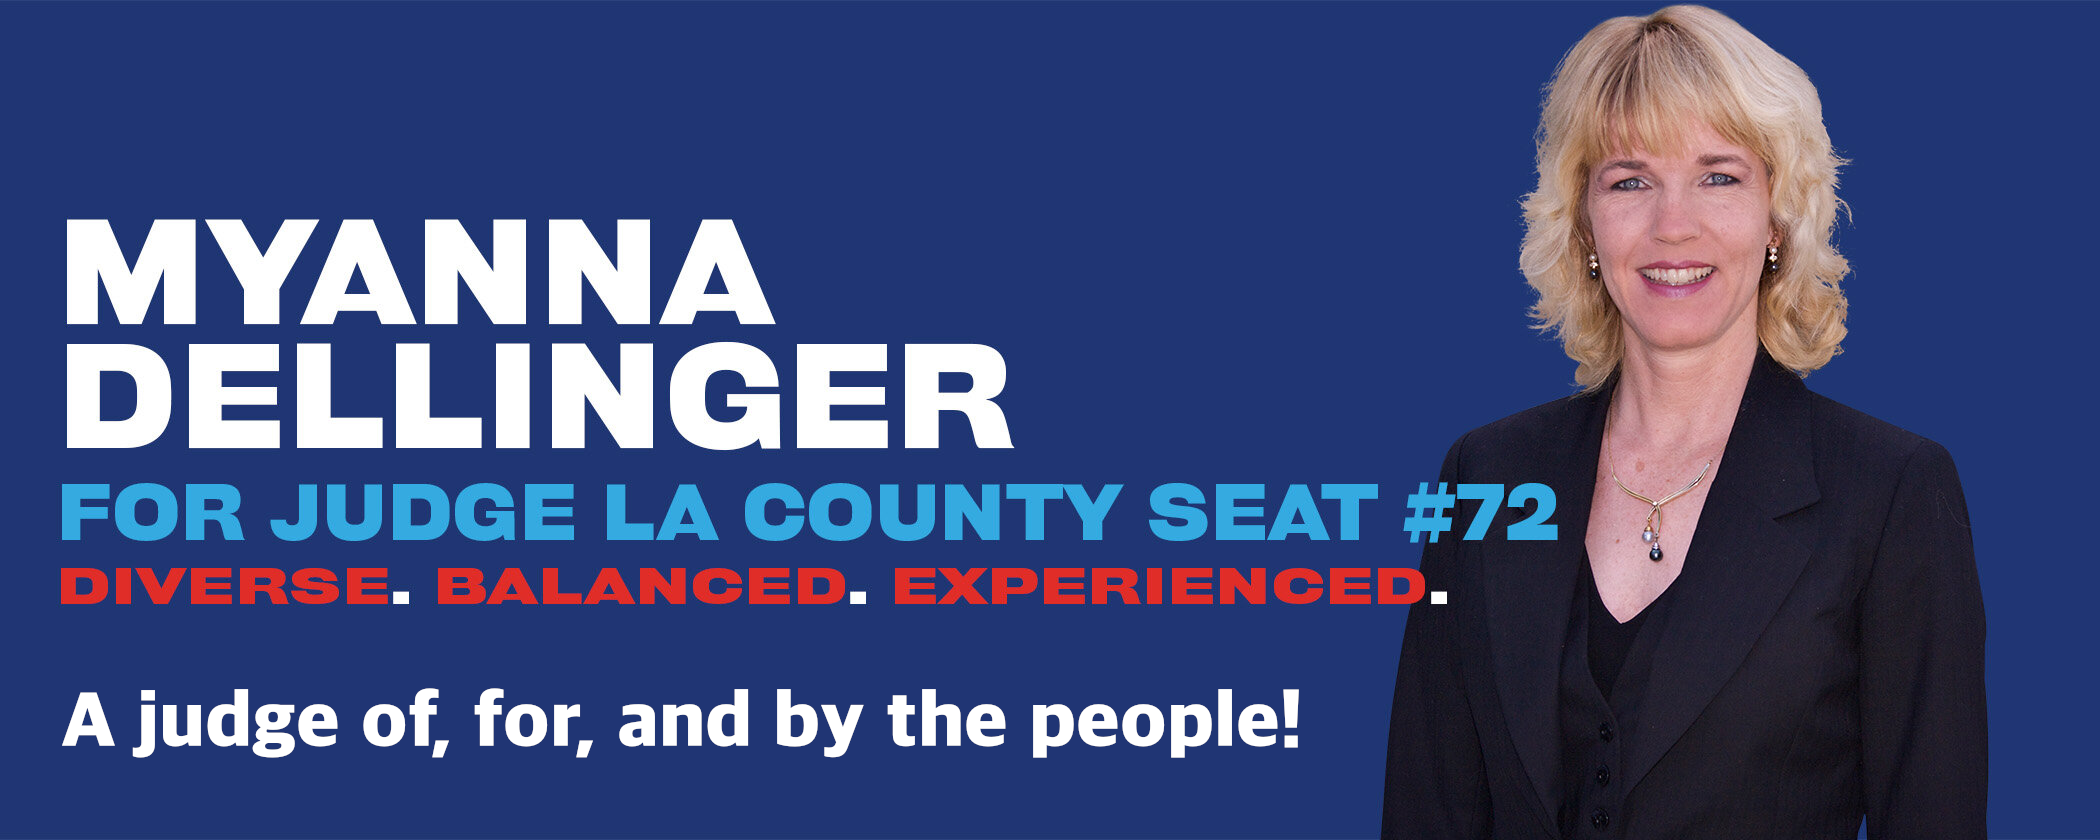 Myanna Dellinger for Judge 2020